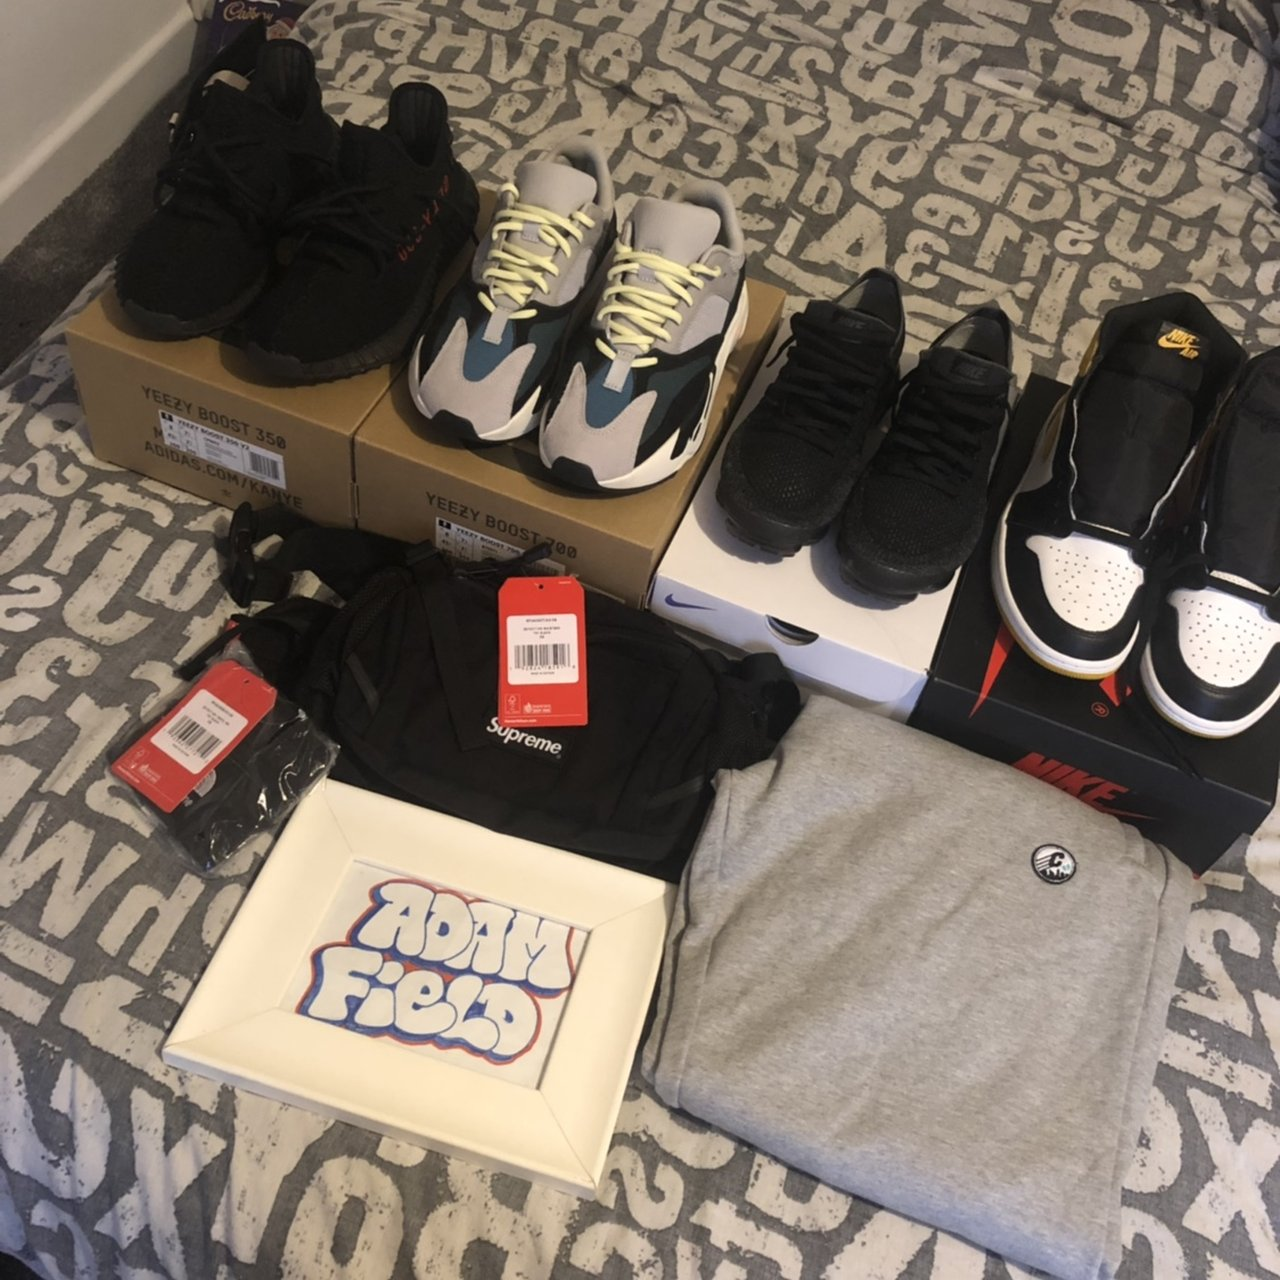 084ac12bf WTS a few clothes and some Uk7 9 shoes  Jordan 1 Yellow uk9 - Depop